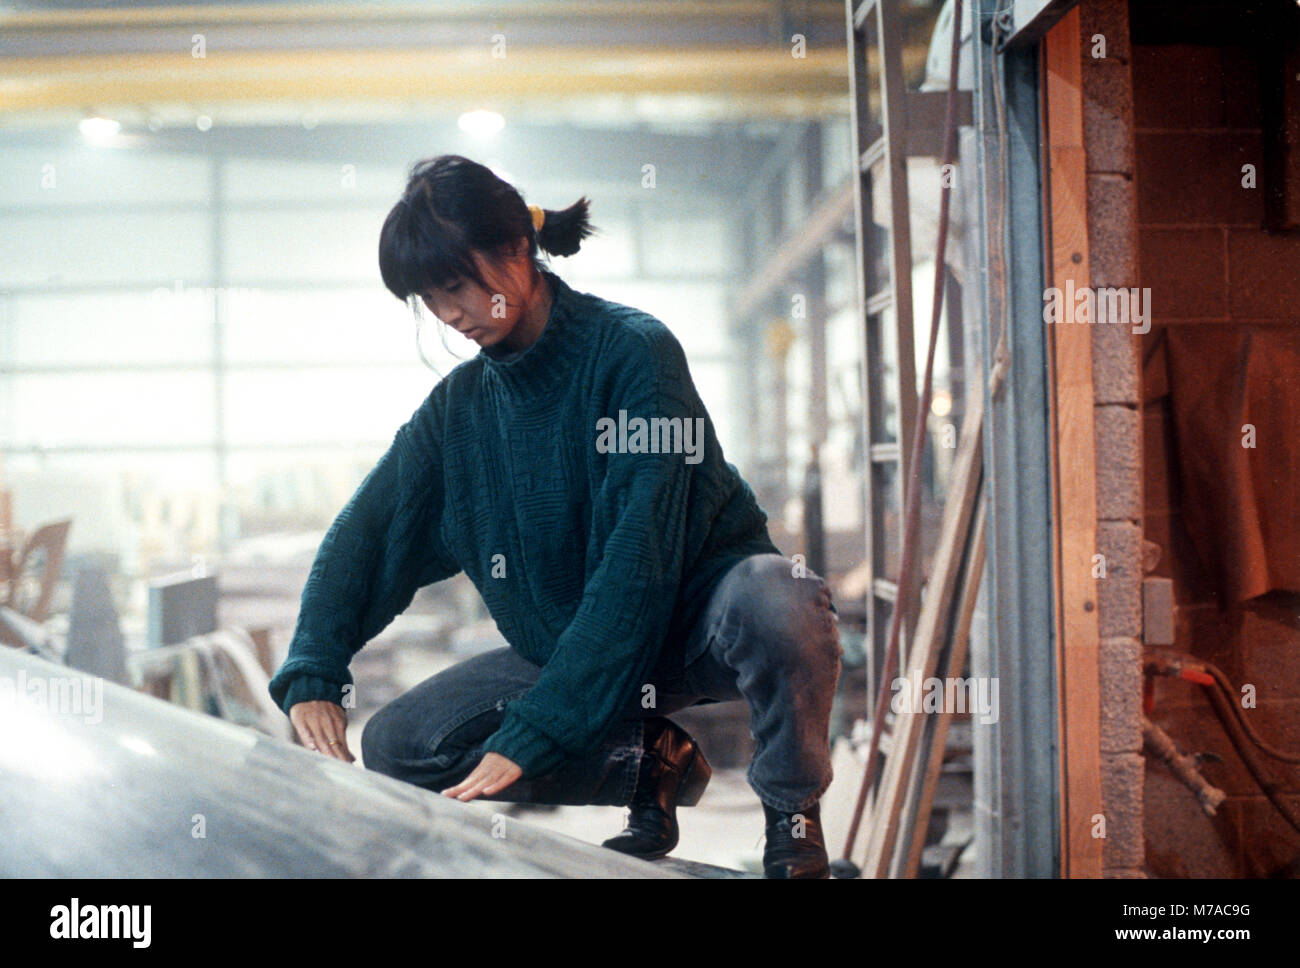 Maya Lin examining inverted water table being fabricated for the Civil Rights Memorial she designed to be installed - Stock Image